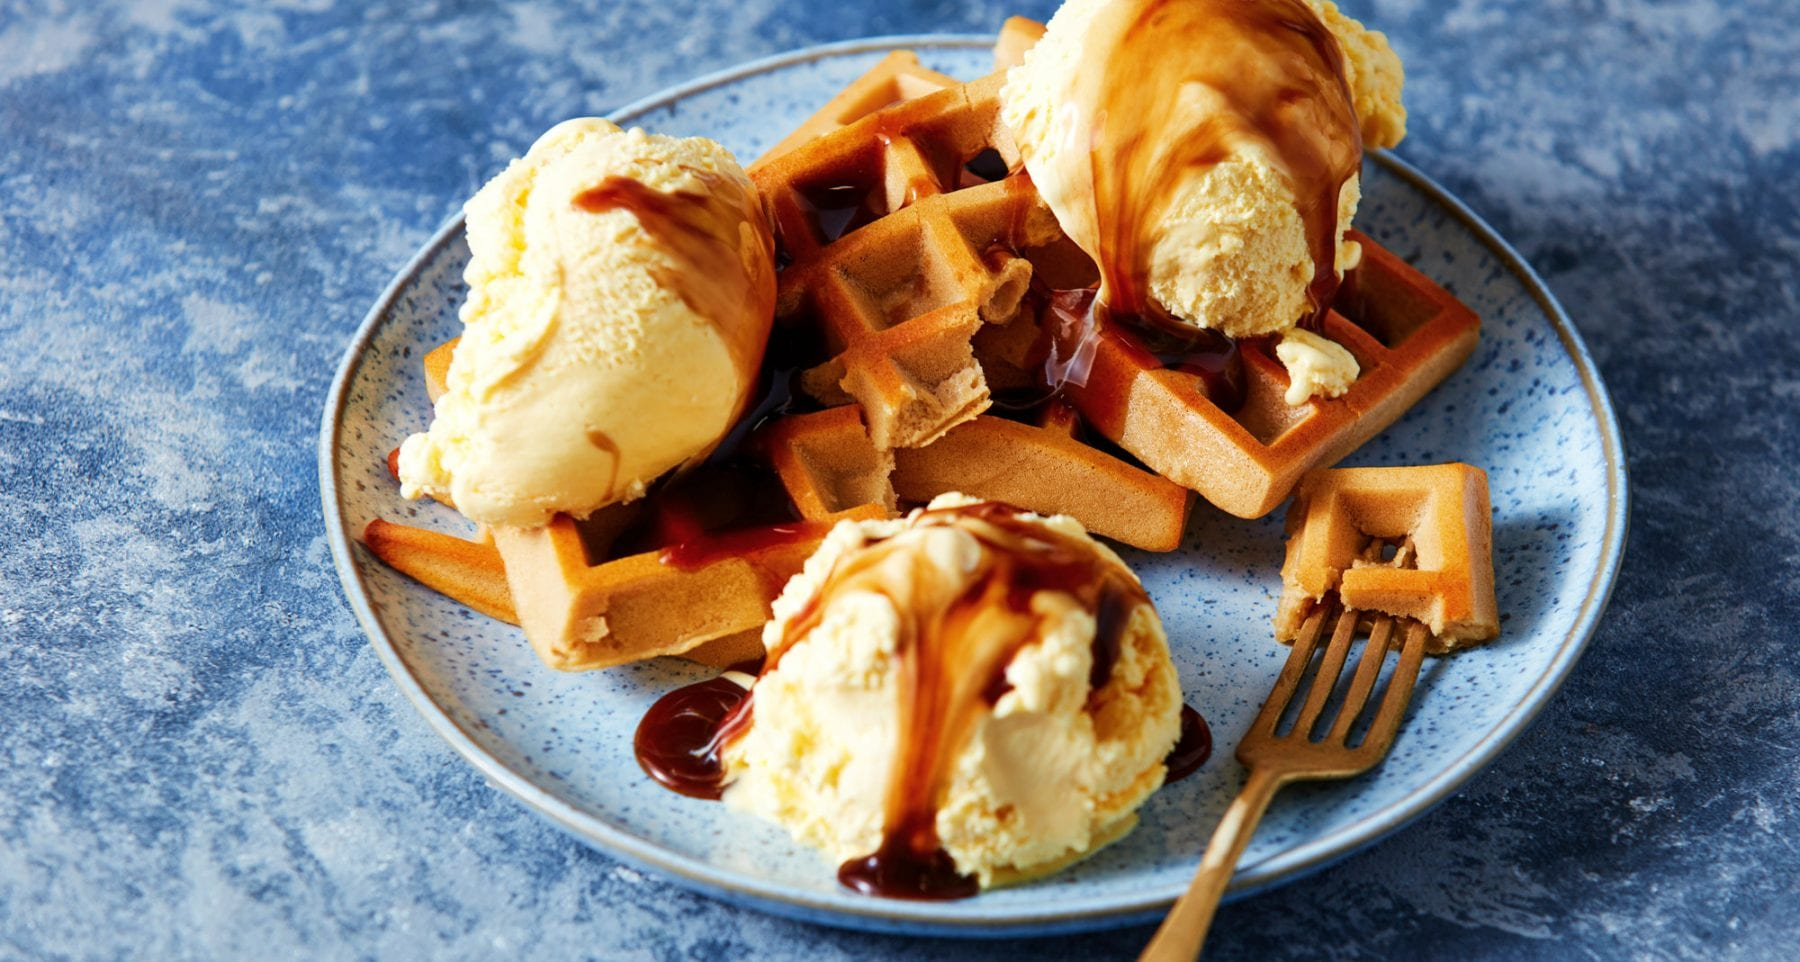 Protein Pancake Batter Waffles and Ice Cream